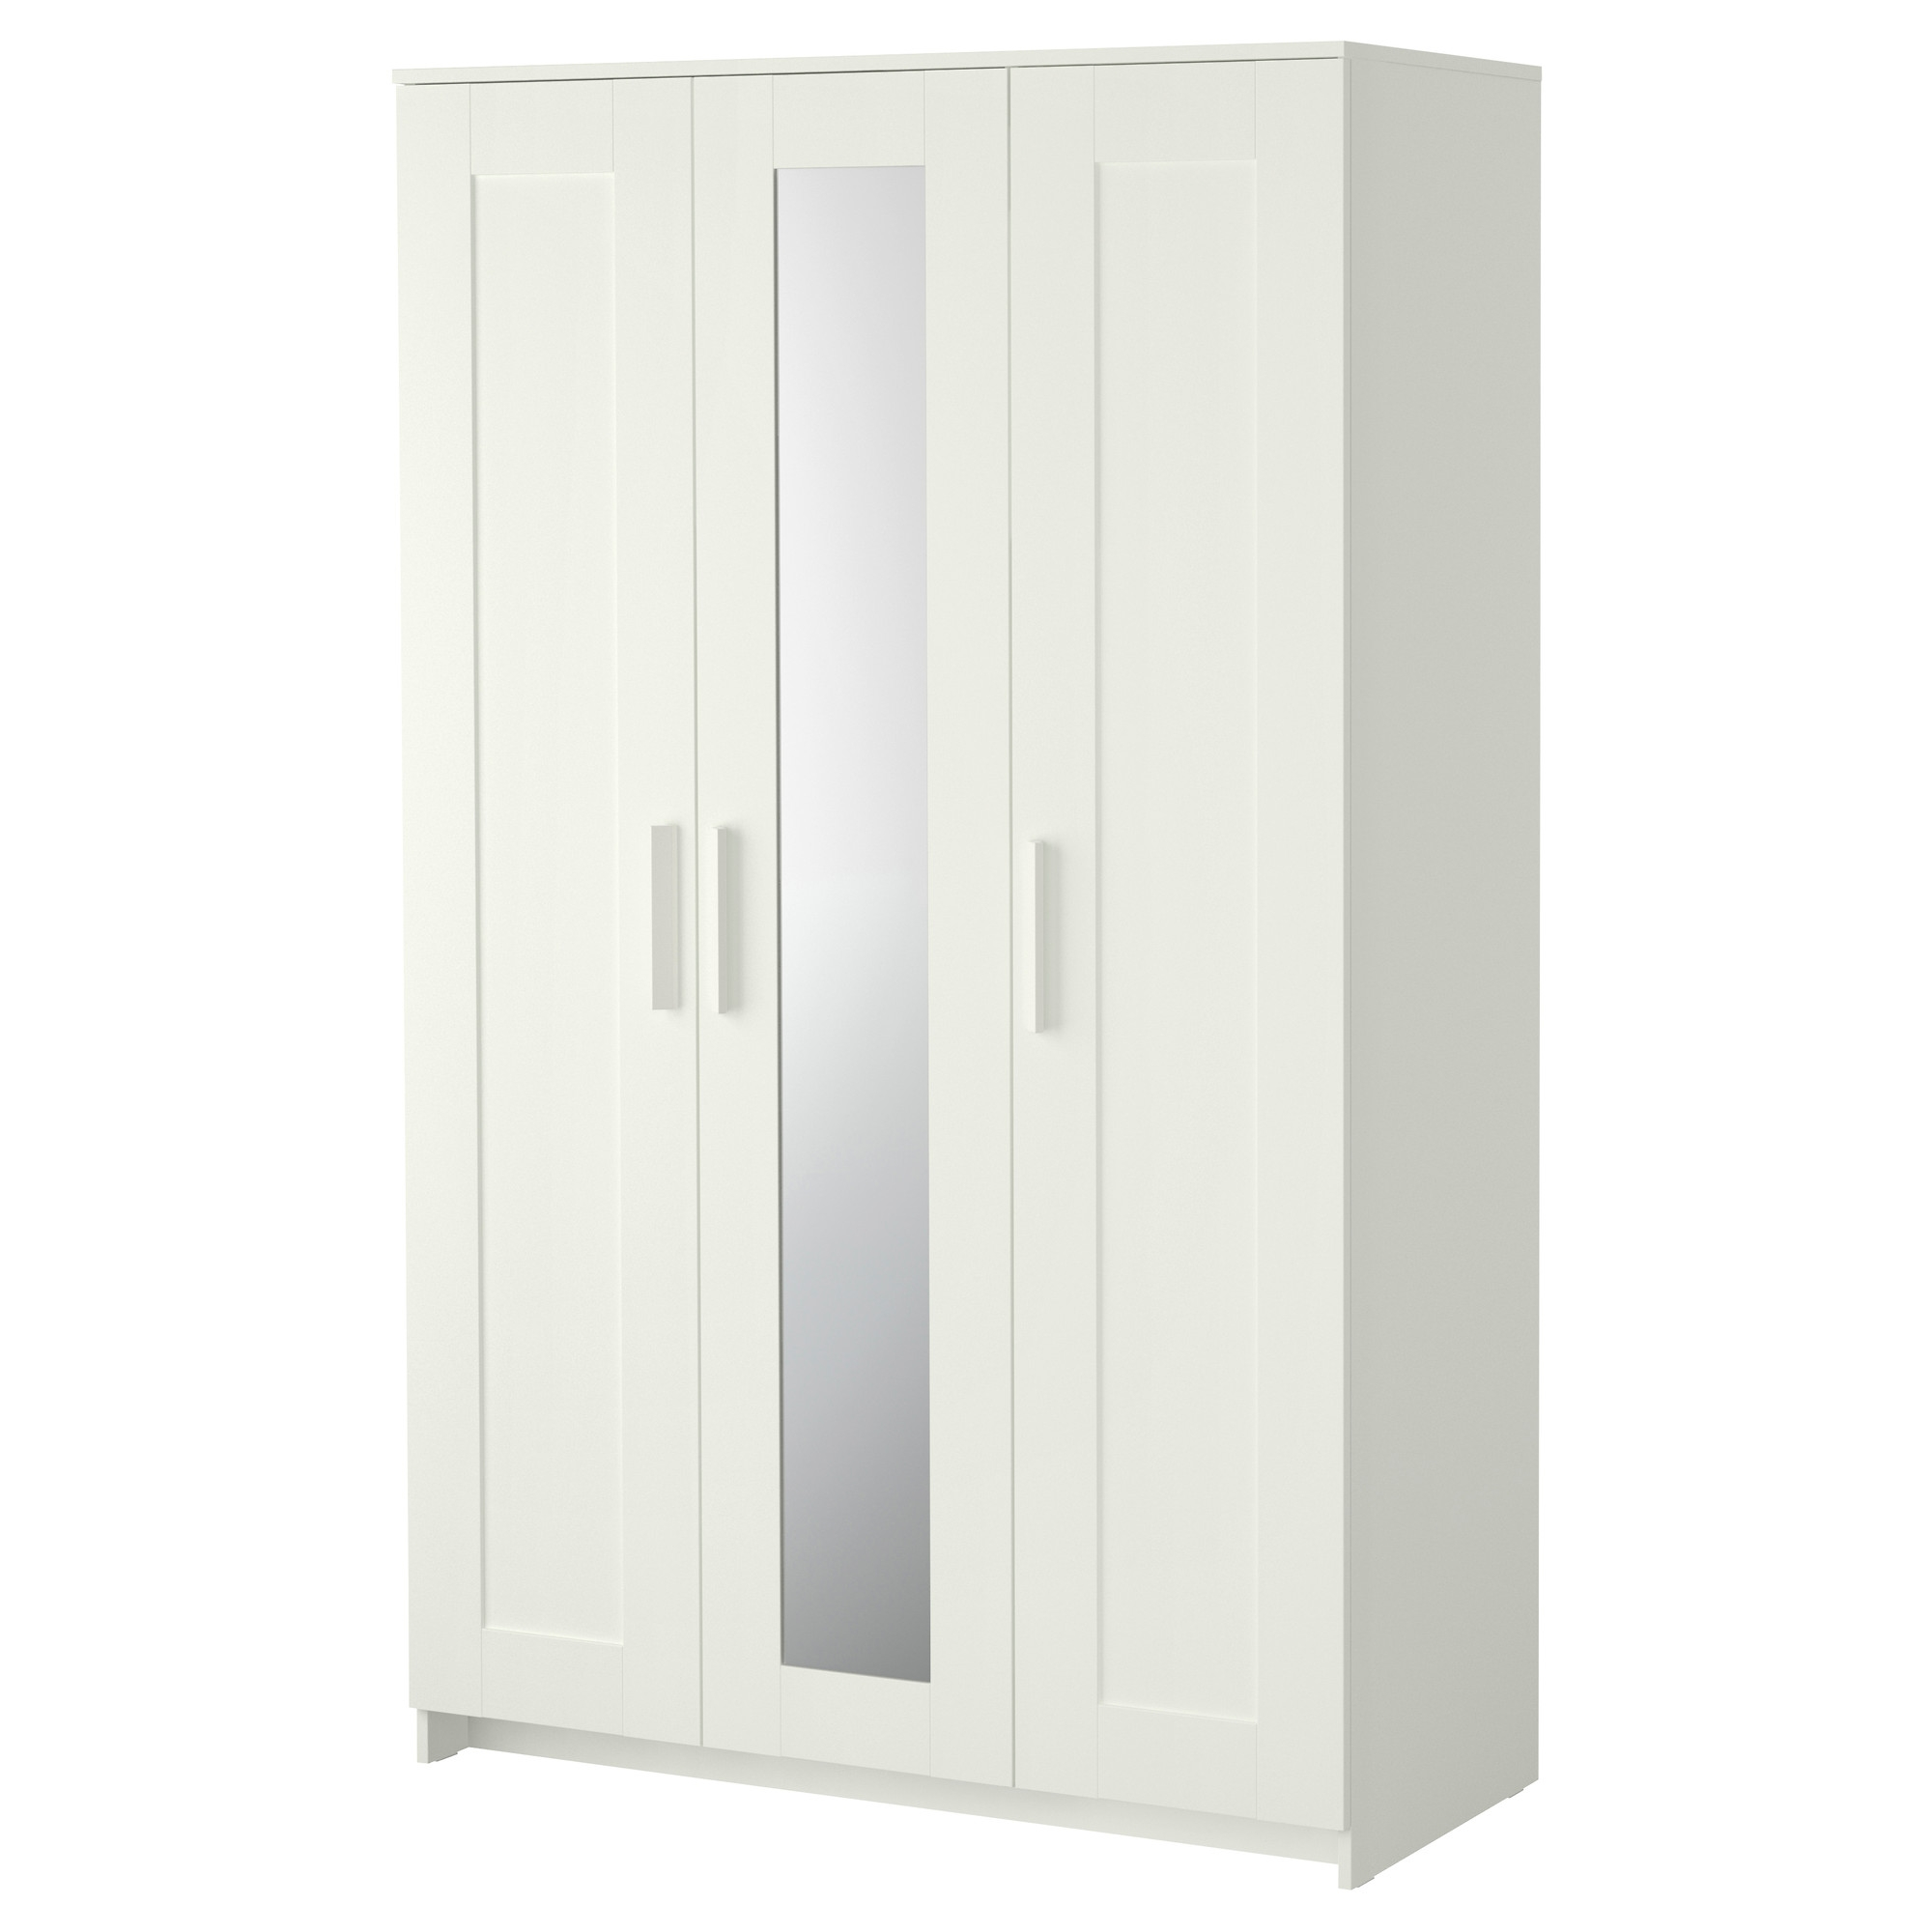 Brimnes Wardrobe With 3 Doors White Ikea Intended For 3 Door White Wardrobes (Image 3 of 25)